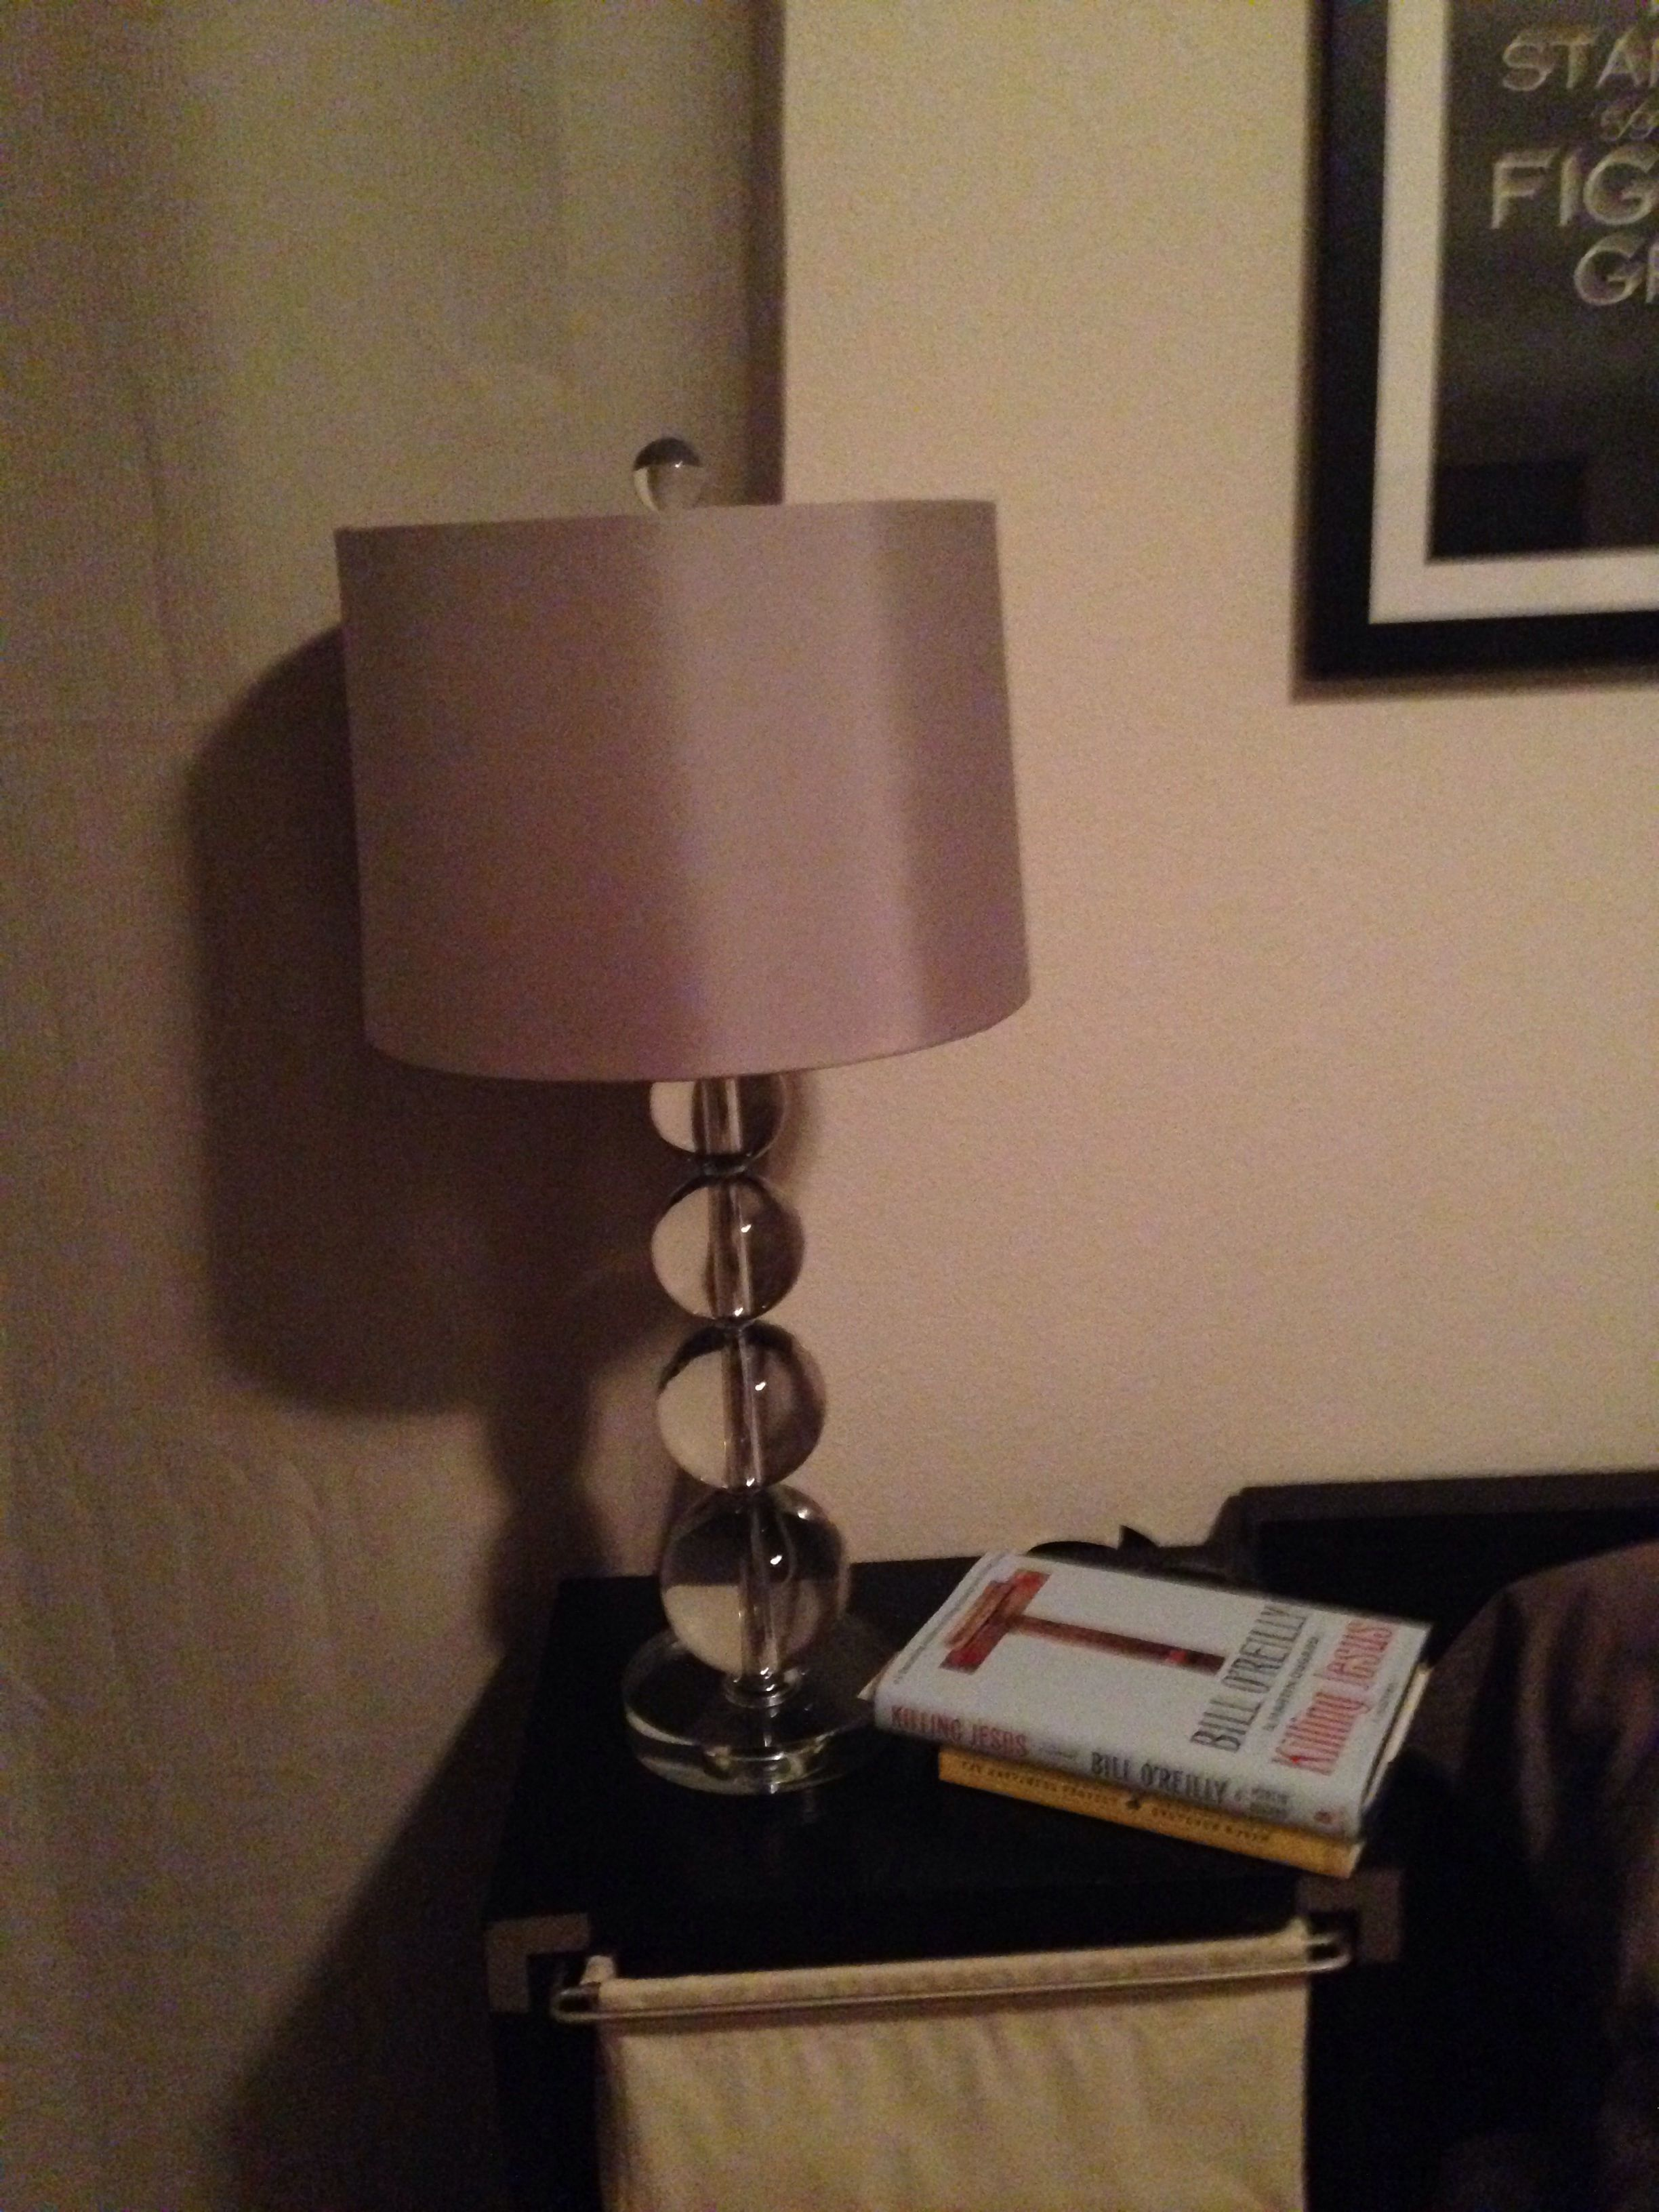 Home goods, 60 Home goods, Table lamp, Lamp